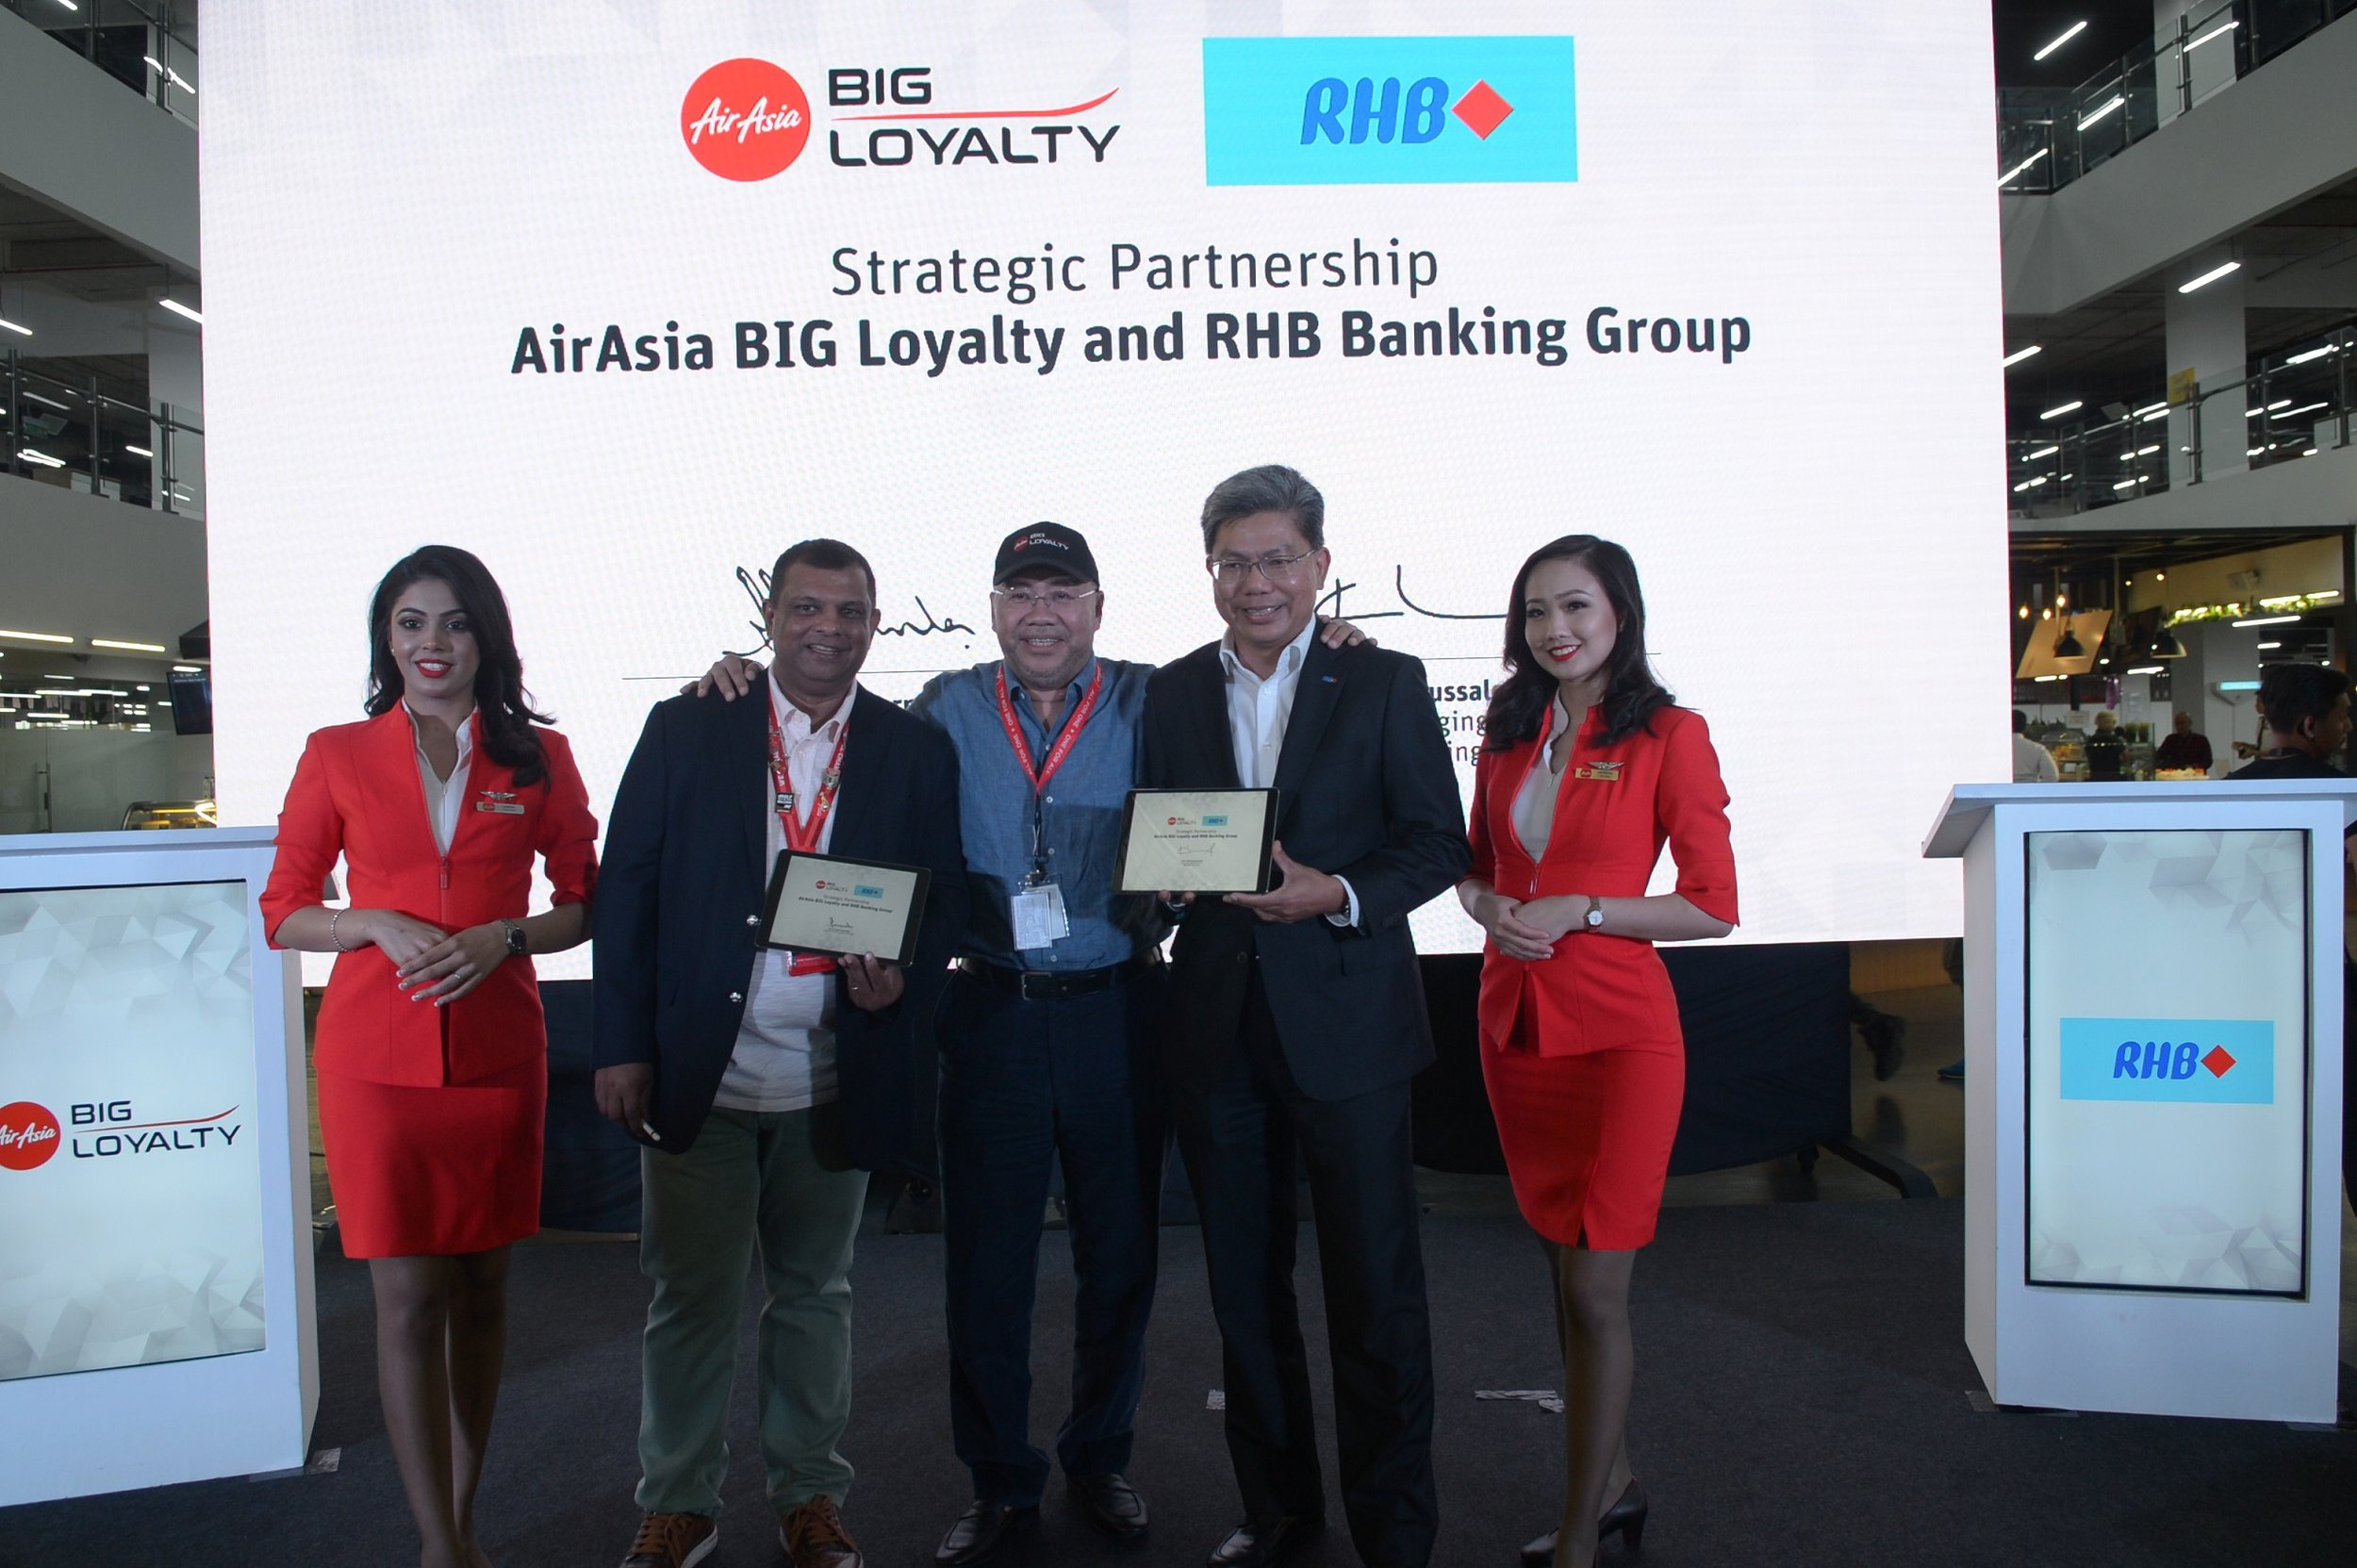 Directors of BIG Loyalty Sdn Bhd Tan Sri Tony Fernandes (second from left) and Datuk Kamarudin Meranun (centre) sealing the partnership with Group Managing Director of RHB Banking Group Dato' Khairussaleh Ramli (second from right).